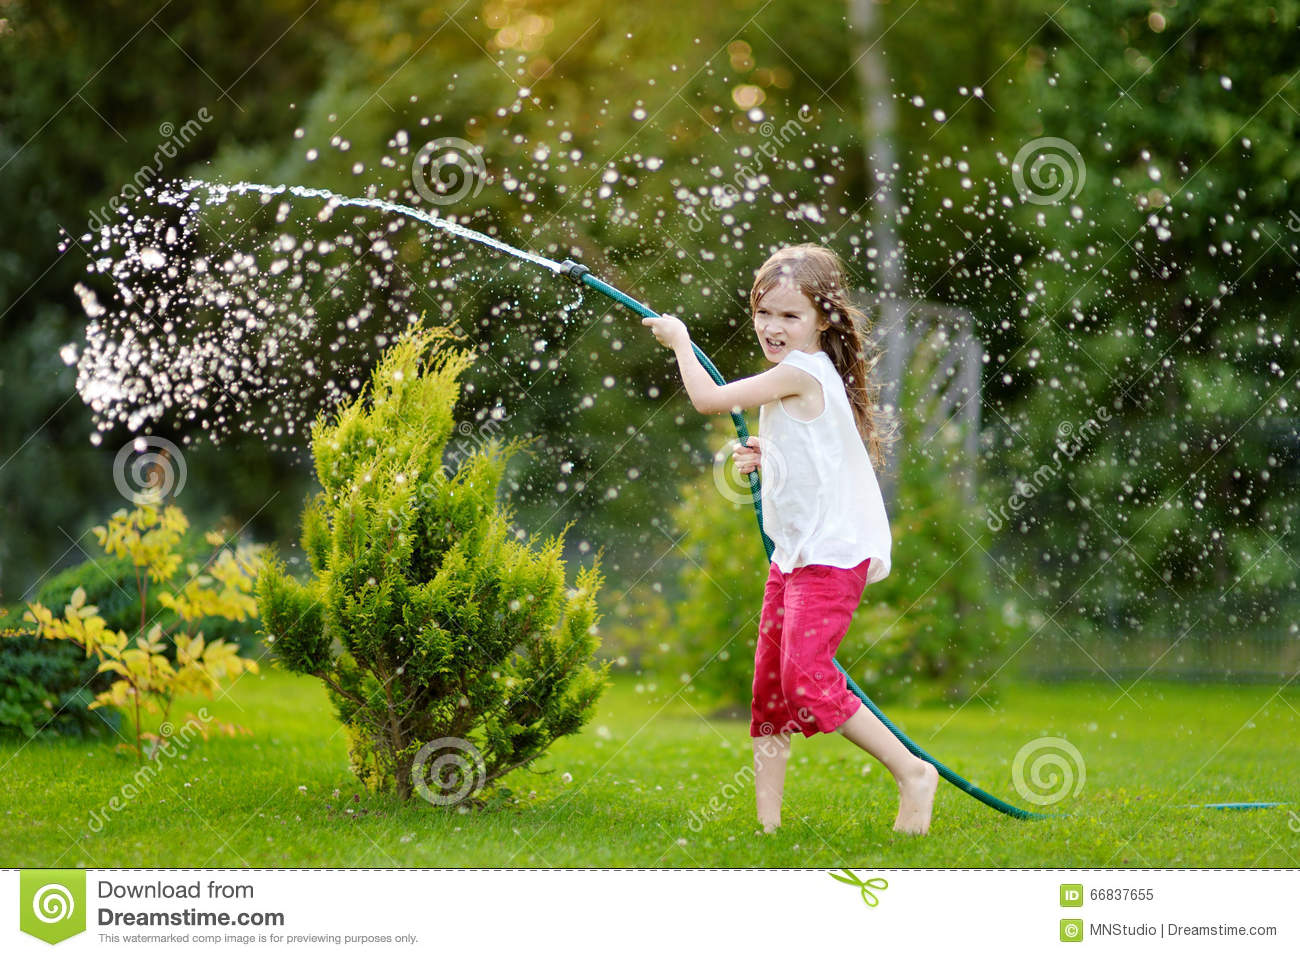 Adorable little girl playing with a garden hose on summer evening